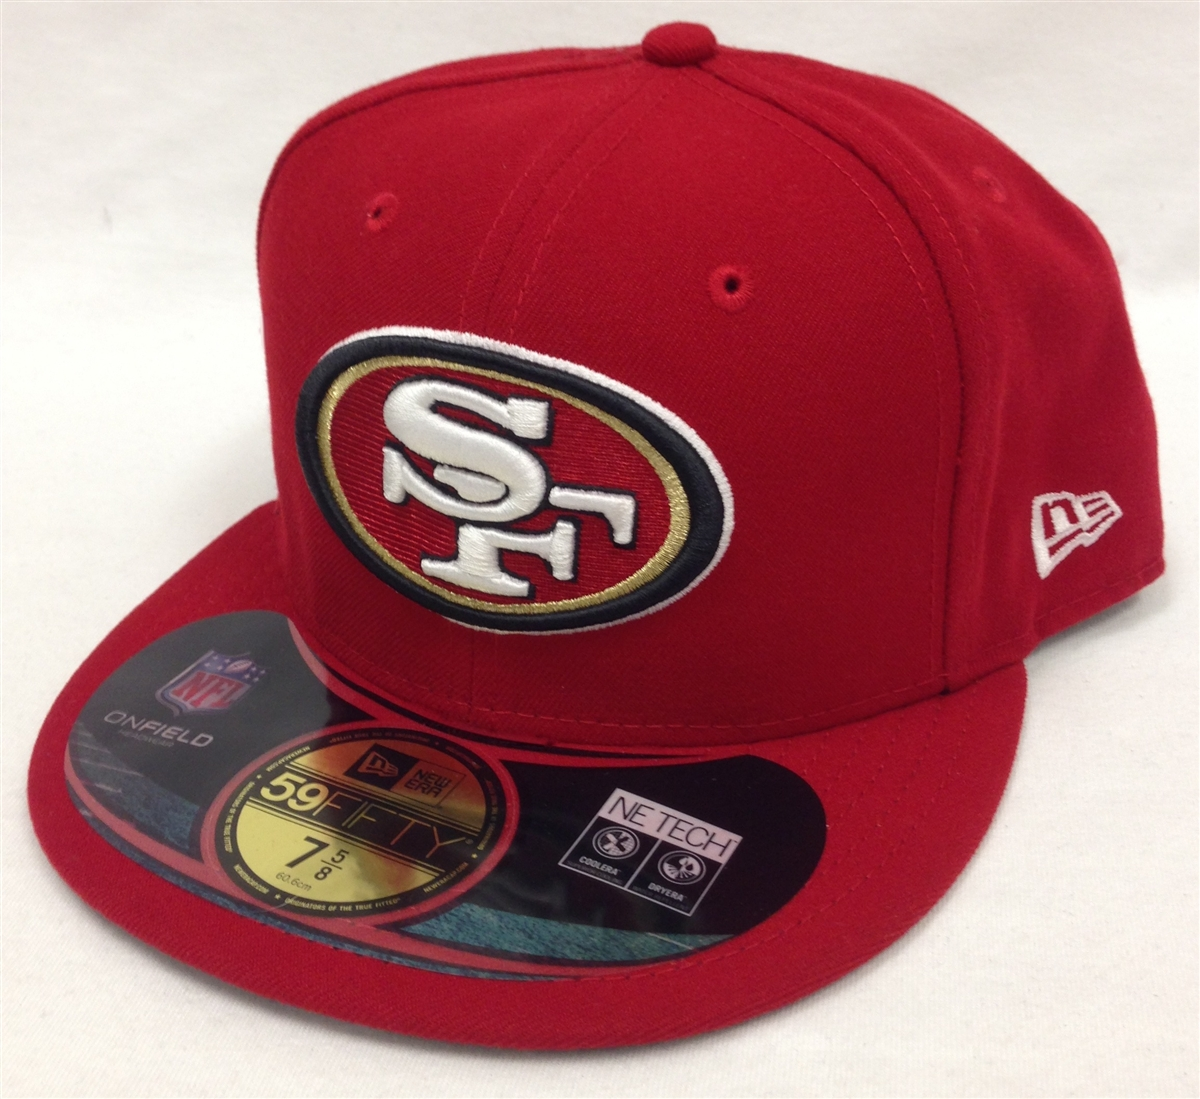 New Era 59Fifty San Francisco 49ers Onfield Red Fitted Cap 29937ecf7464